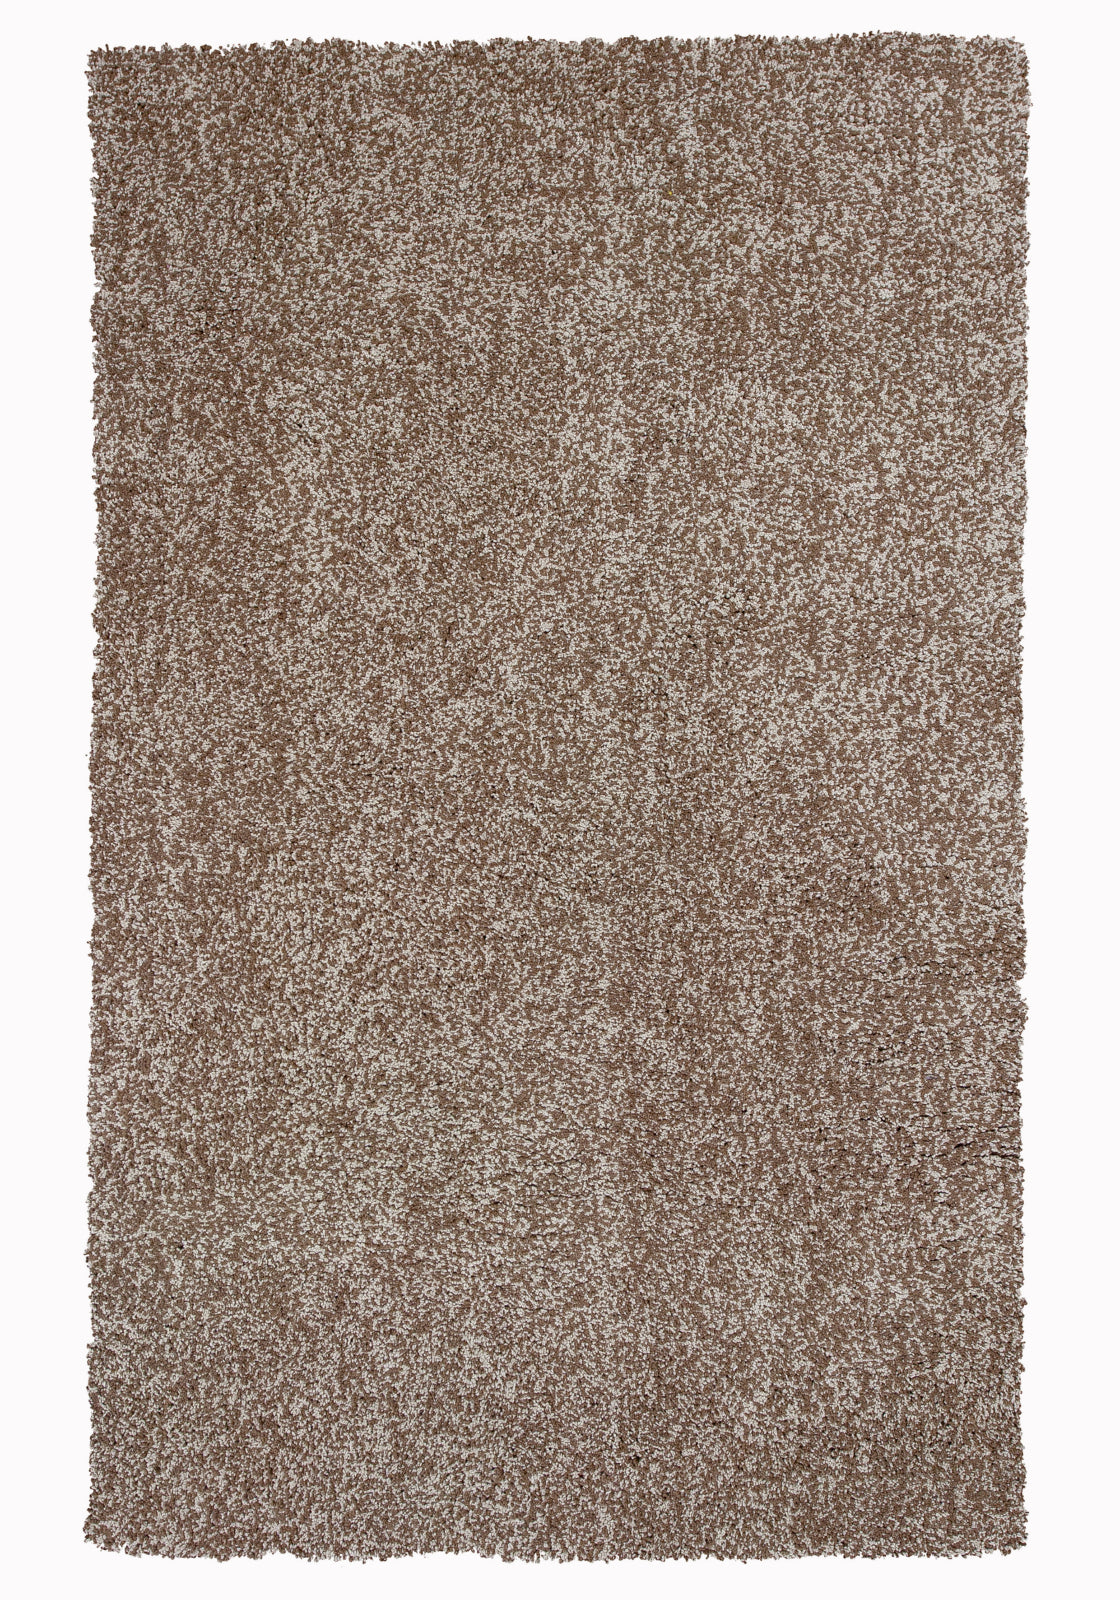 KAS Bliss 1581 Beige Heather Shag Area Rug main image